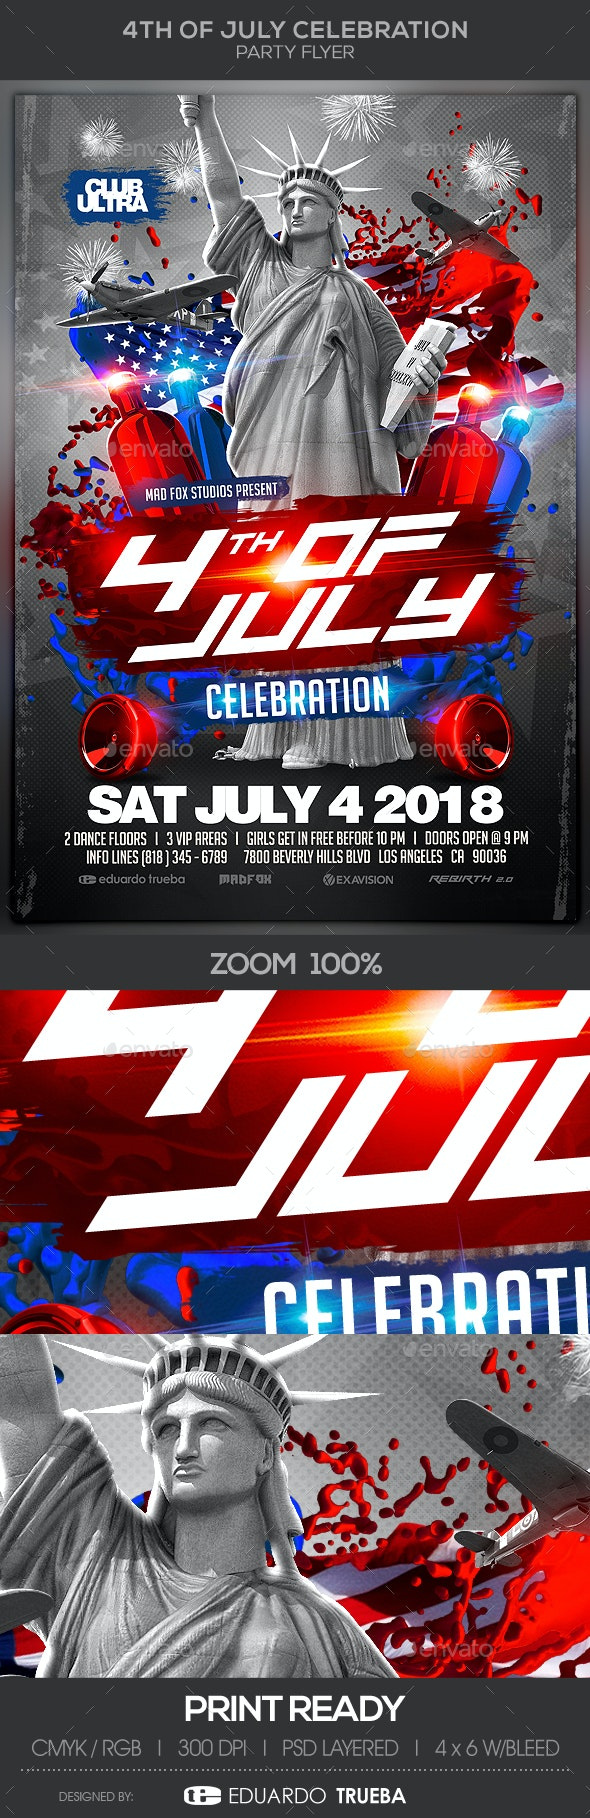 4th of July Celebration Party Flyer - Clubs & Parties Events